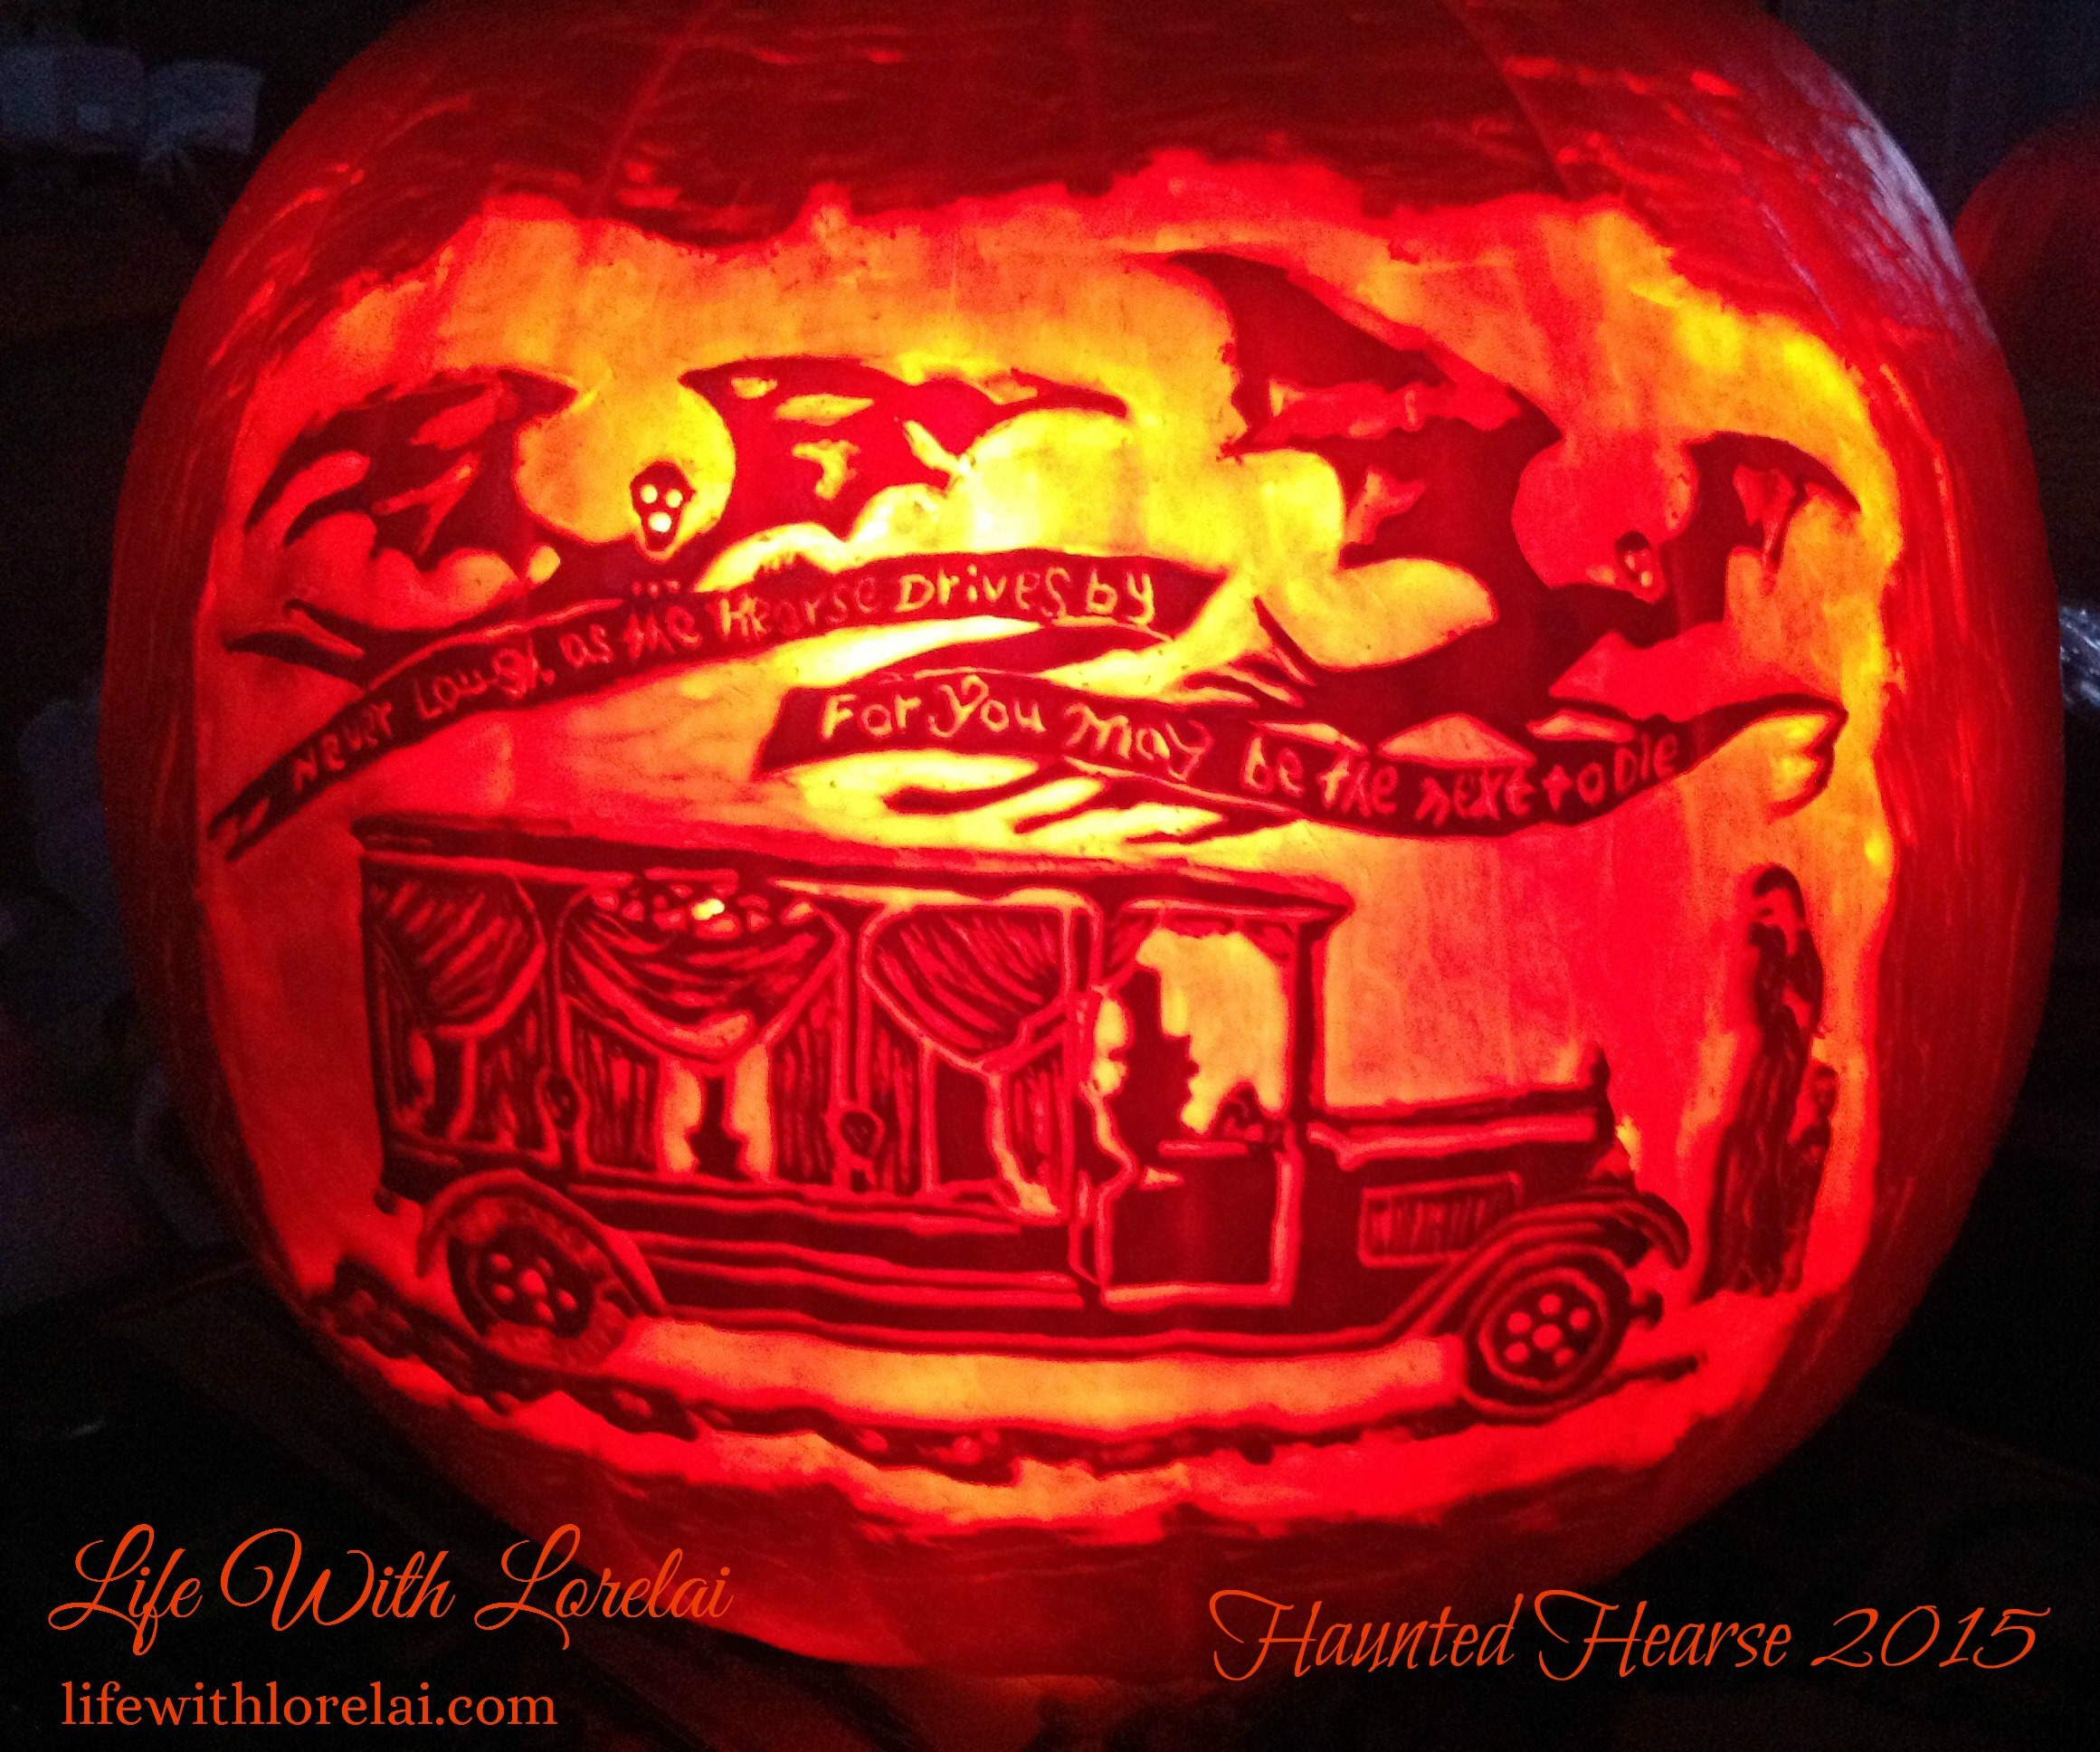 Pumpkin-Carving-Haunted-Hearse-2015 - Life-With-Lorelai